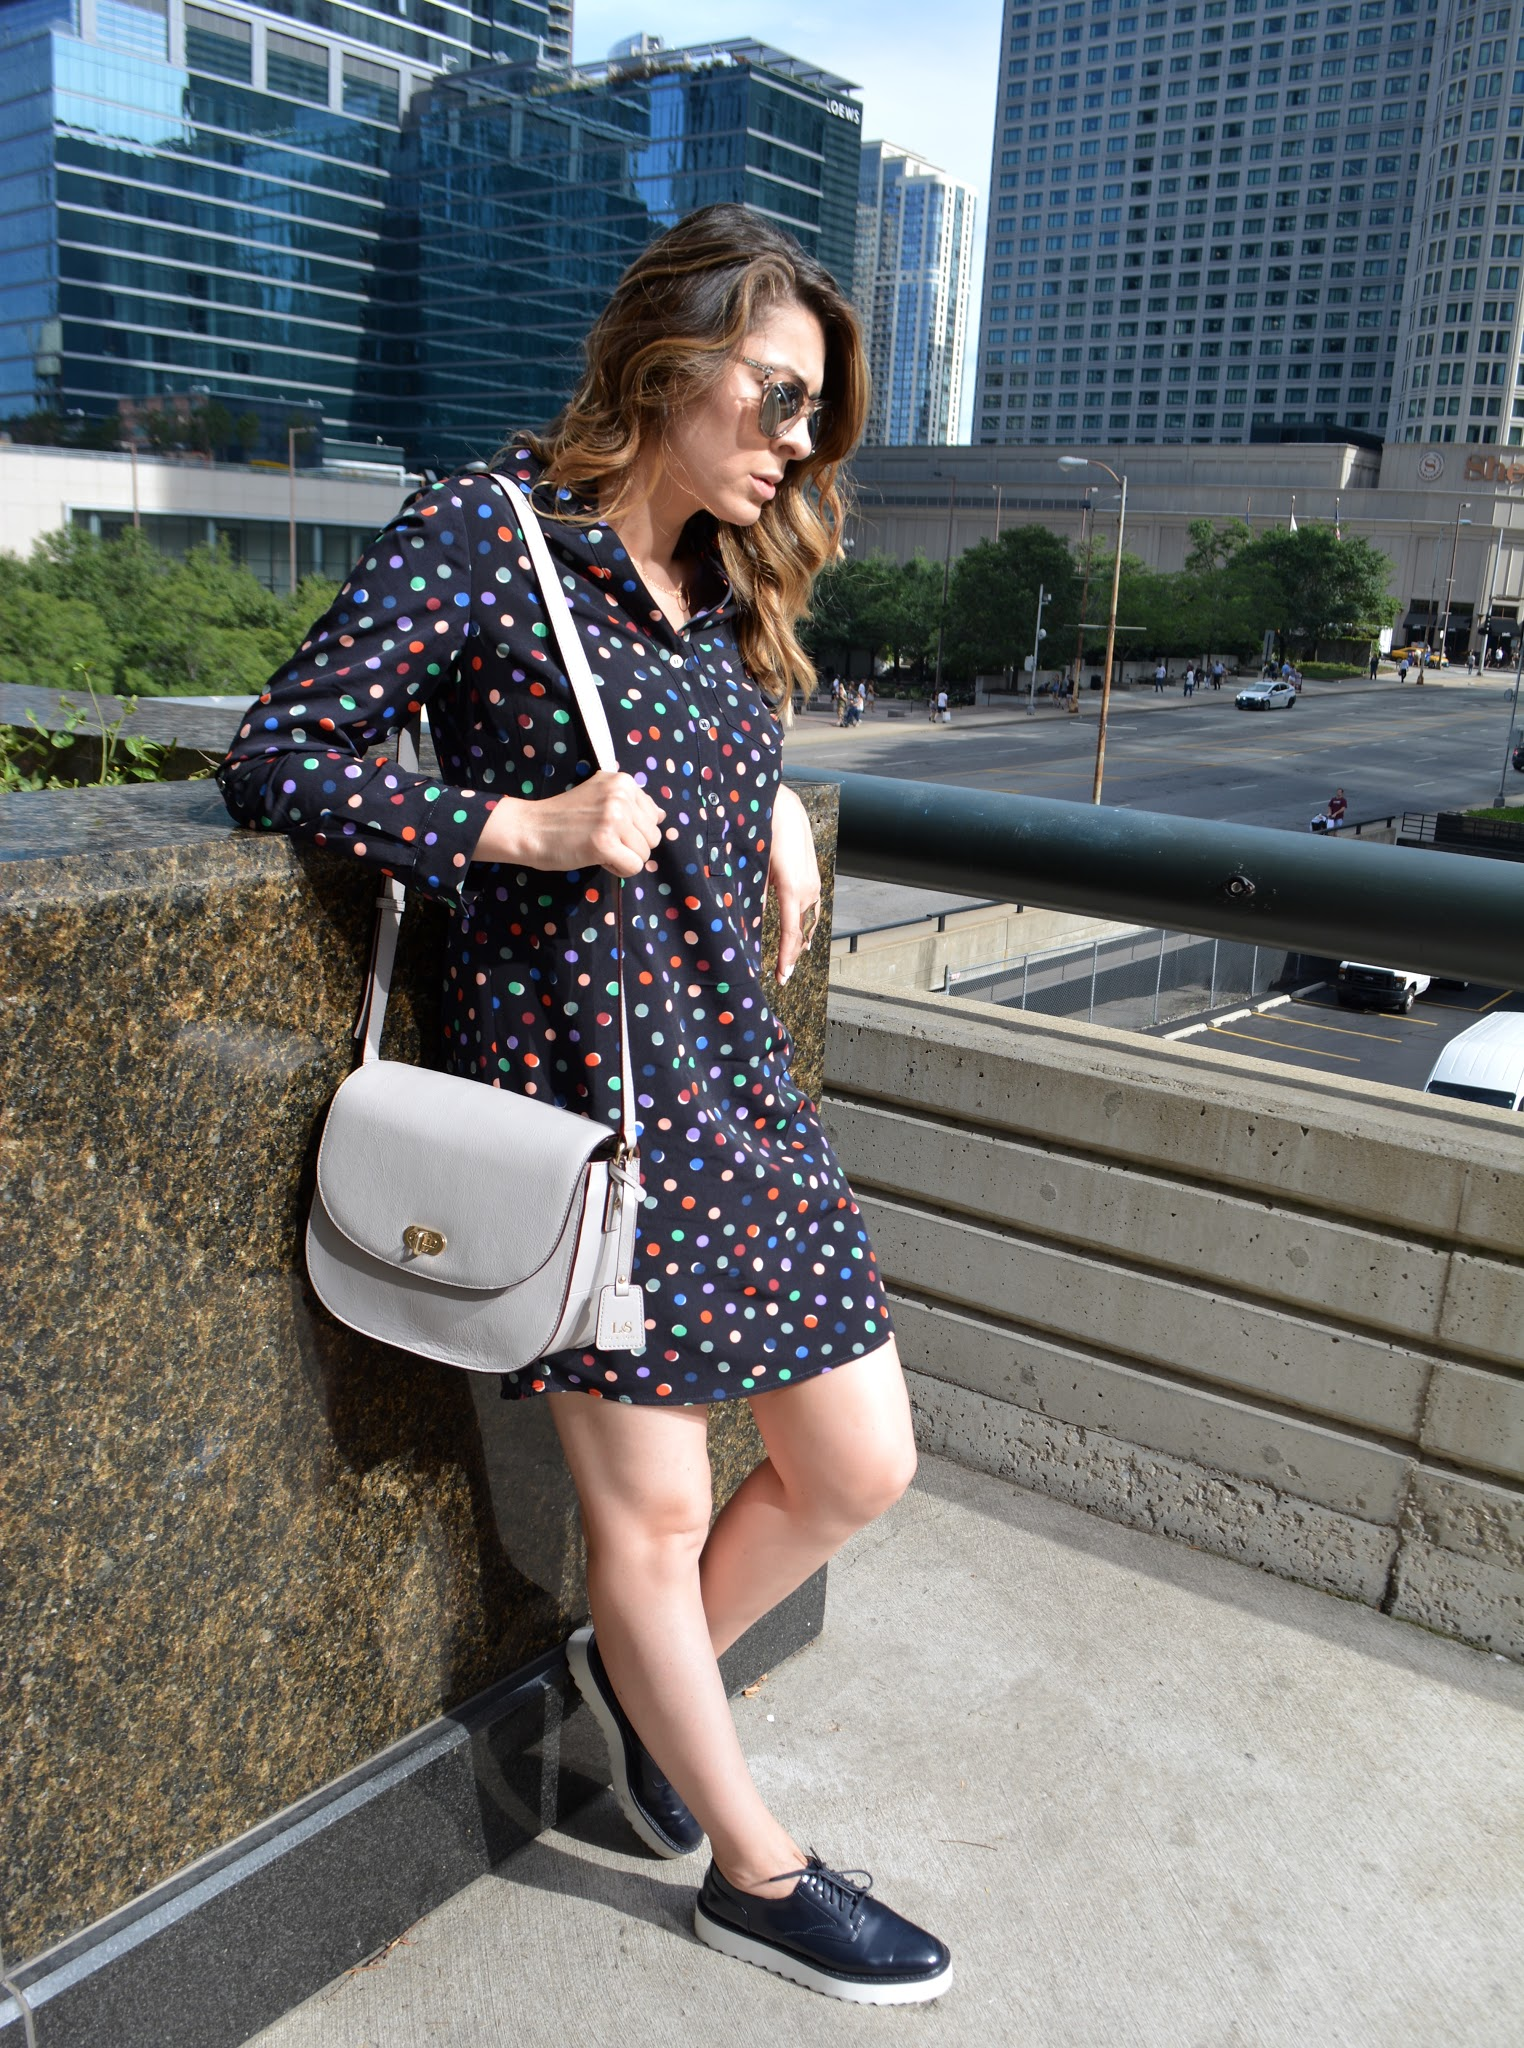 Claremont camera bag, Lo & Sons, Lo & Sons Claremont bag, leather camera bag, bolso de cámara Lo & Sons, bolso de cámara de cuero, Chicago blogger, bloguera de Chicago, Latina blogger, bloguera latina, Chicago White Sox, Millennium Park, Iridium clothing, Roof on theWit, Upstairs at the Gwen, azoteas de Chicago, Lo & Sons bags